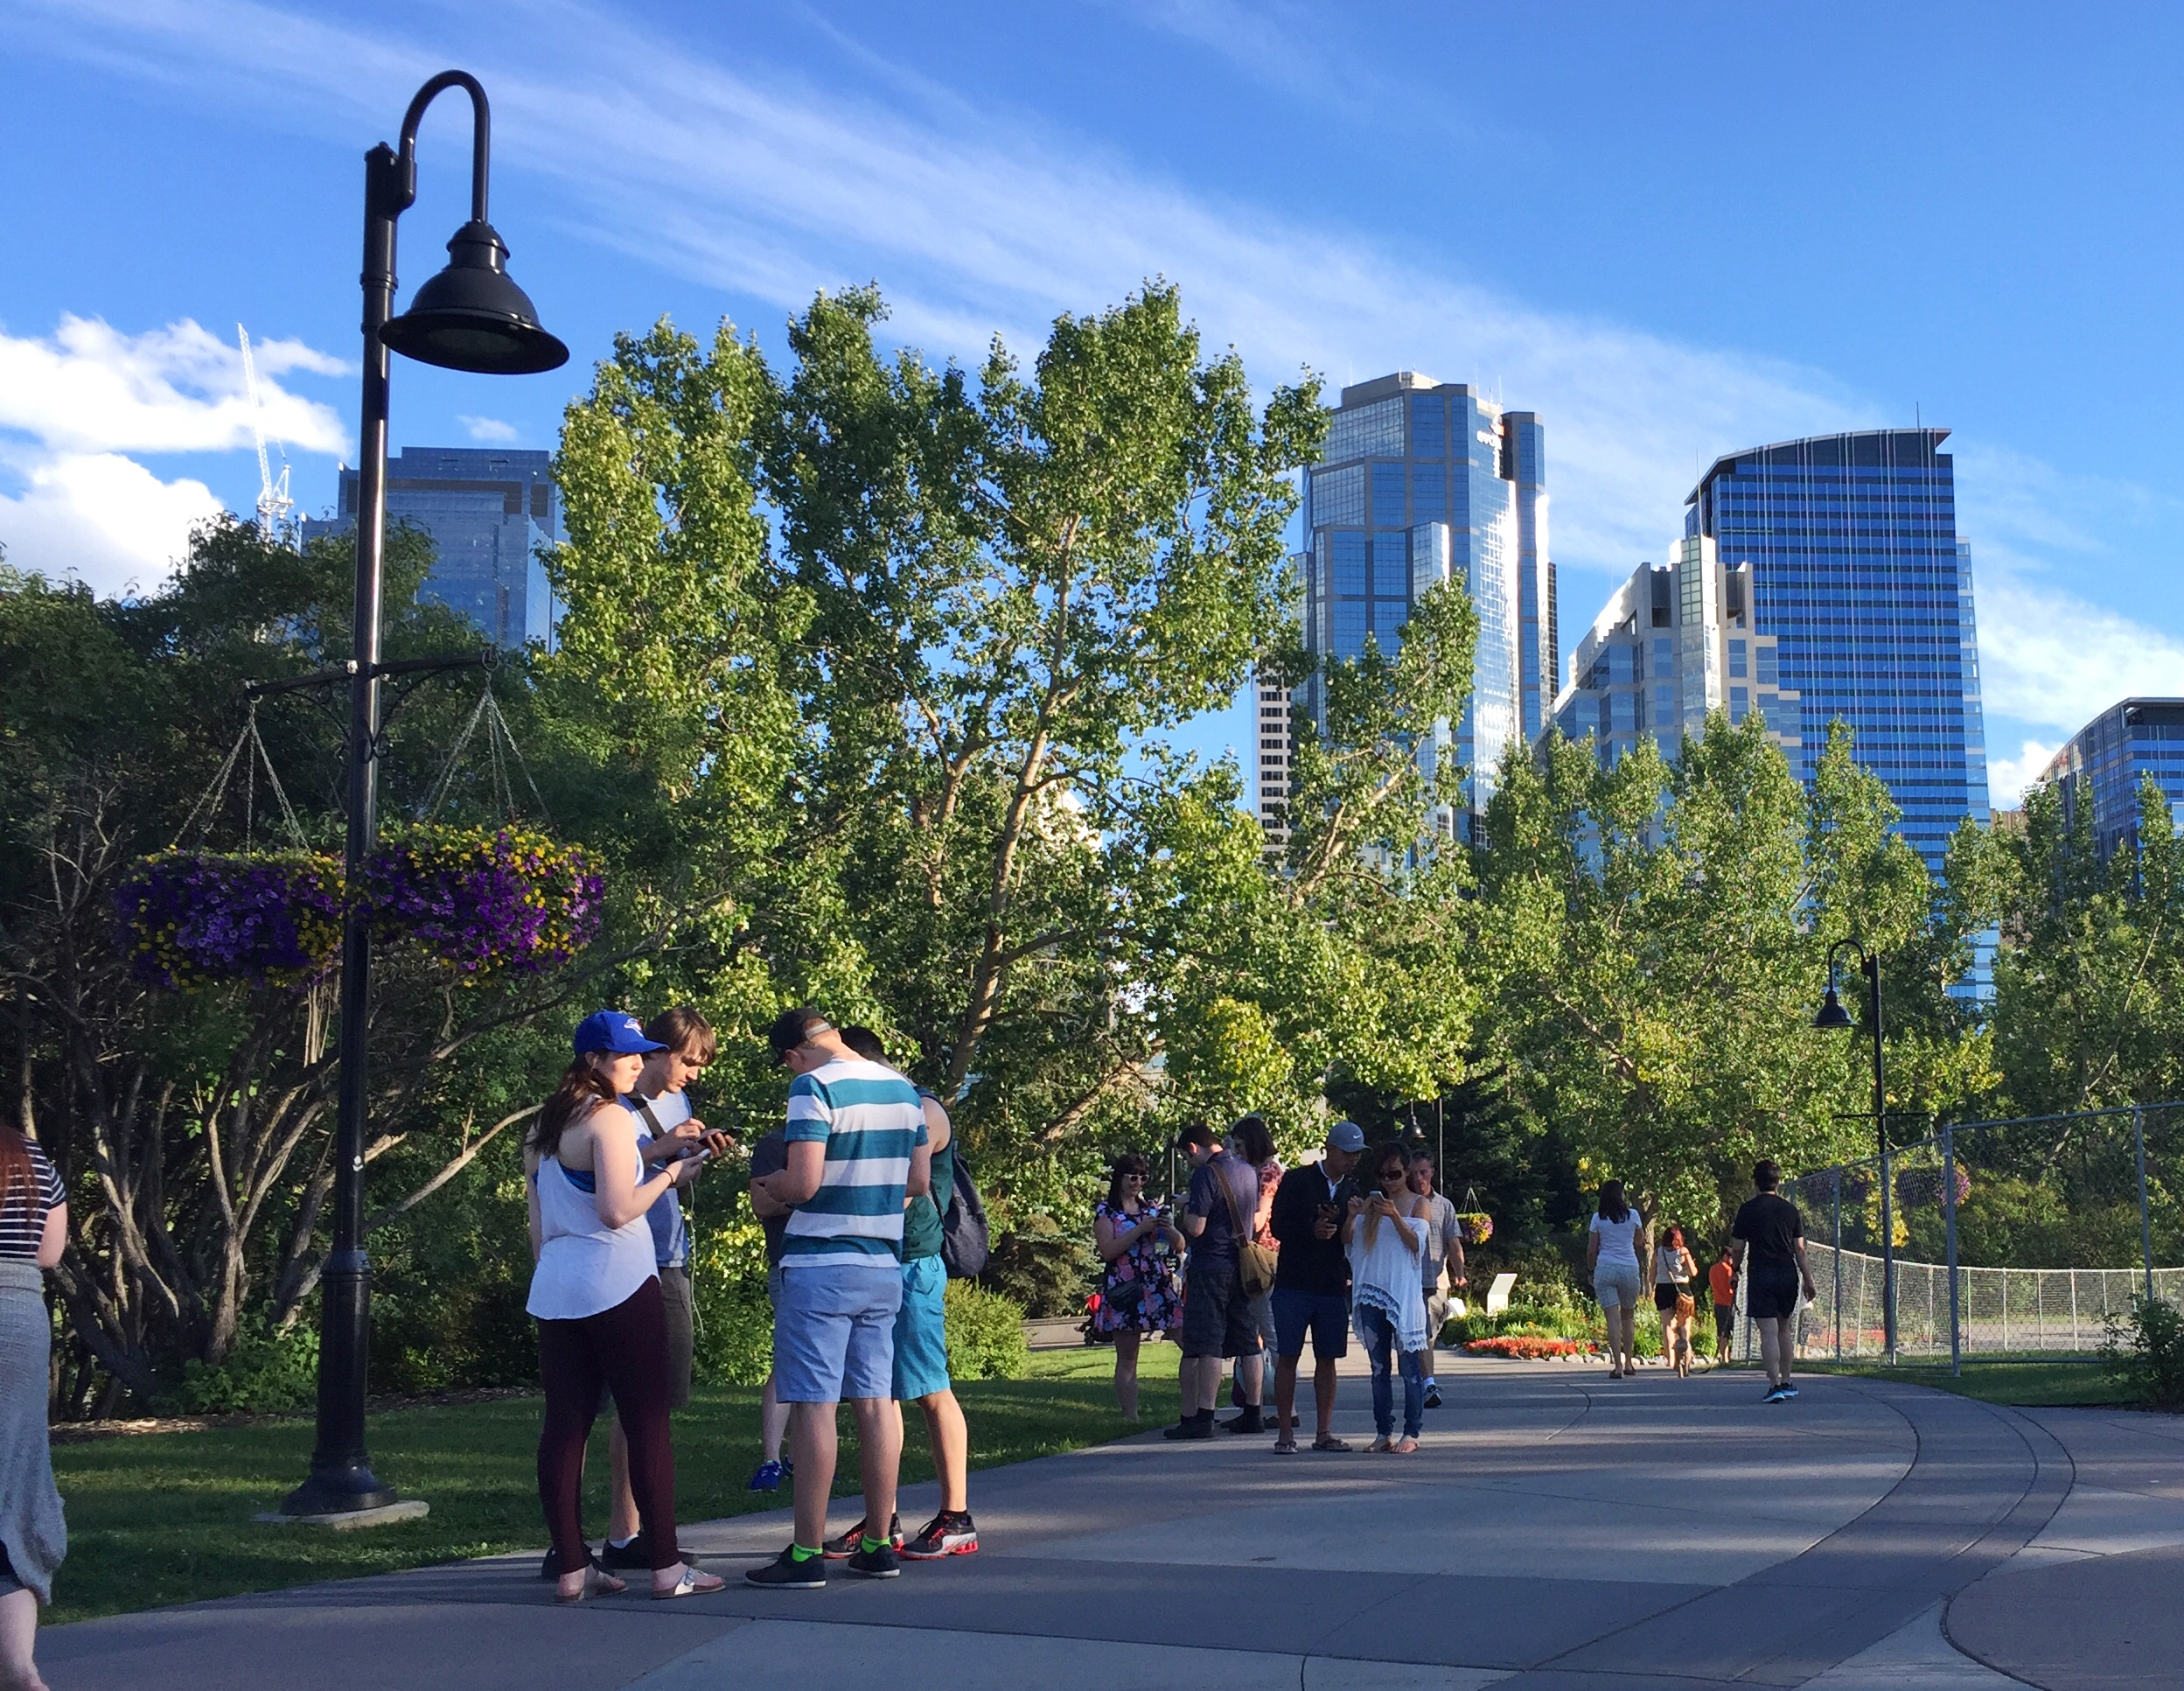 Pokemon Go in Calgary